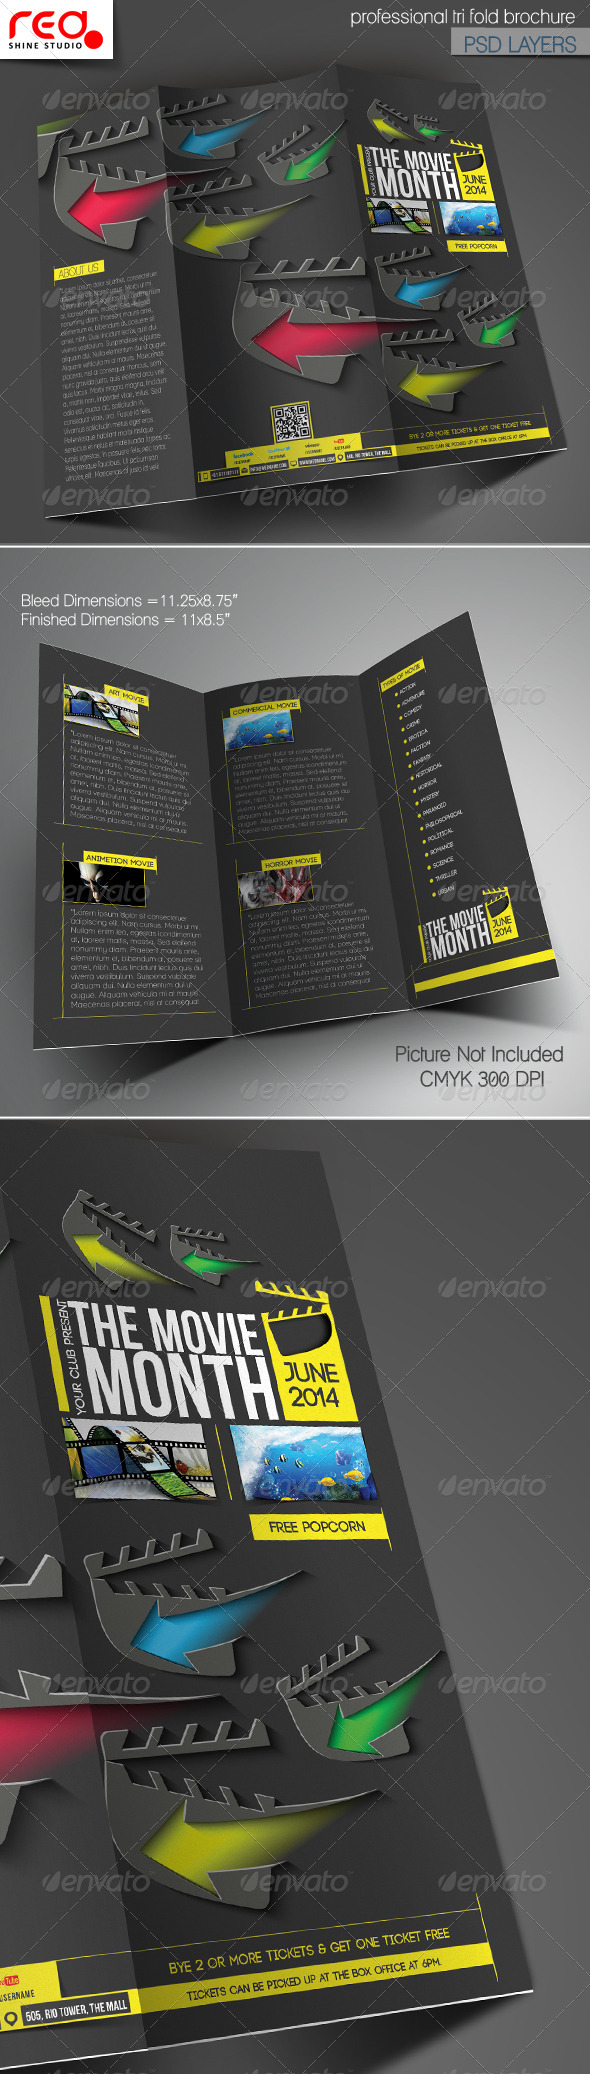 The Movie Month Trifold Brochure Template  - Corporate Brochures